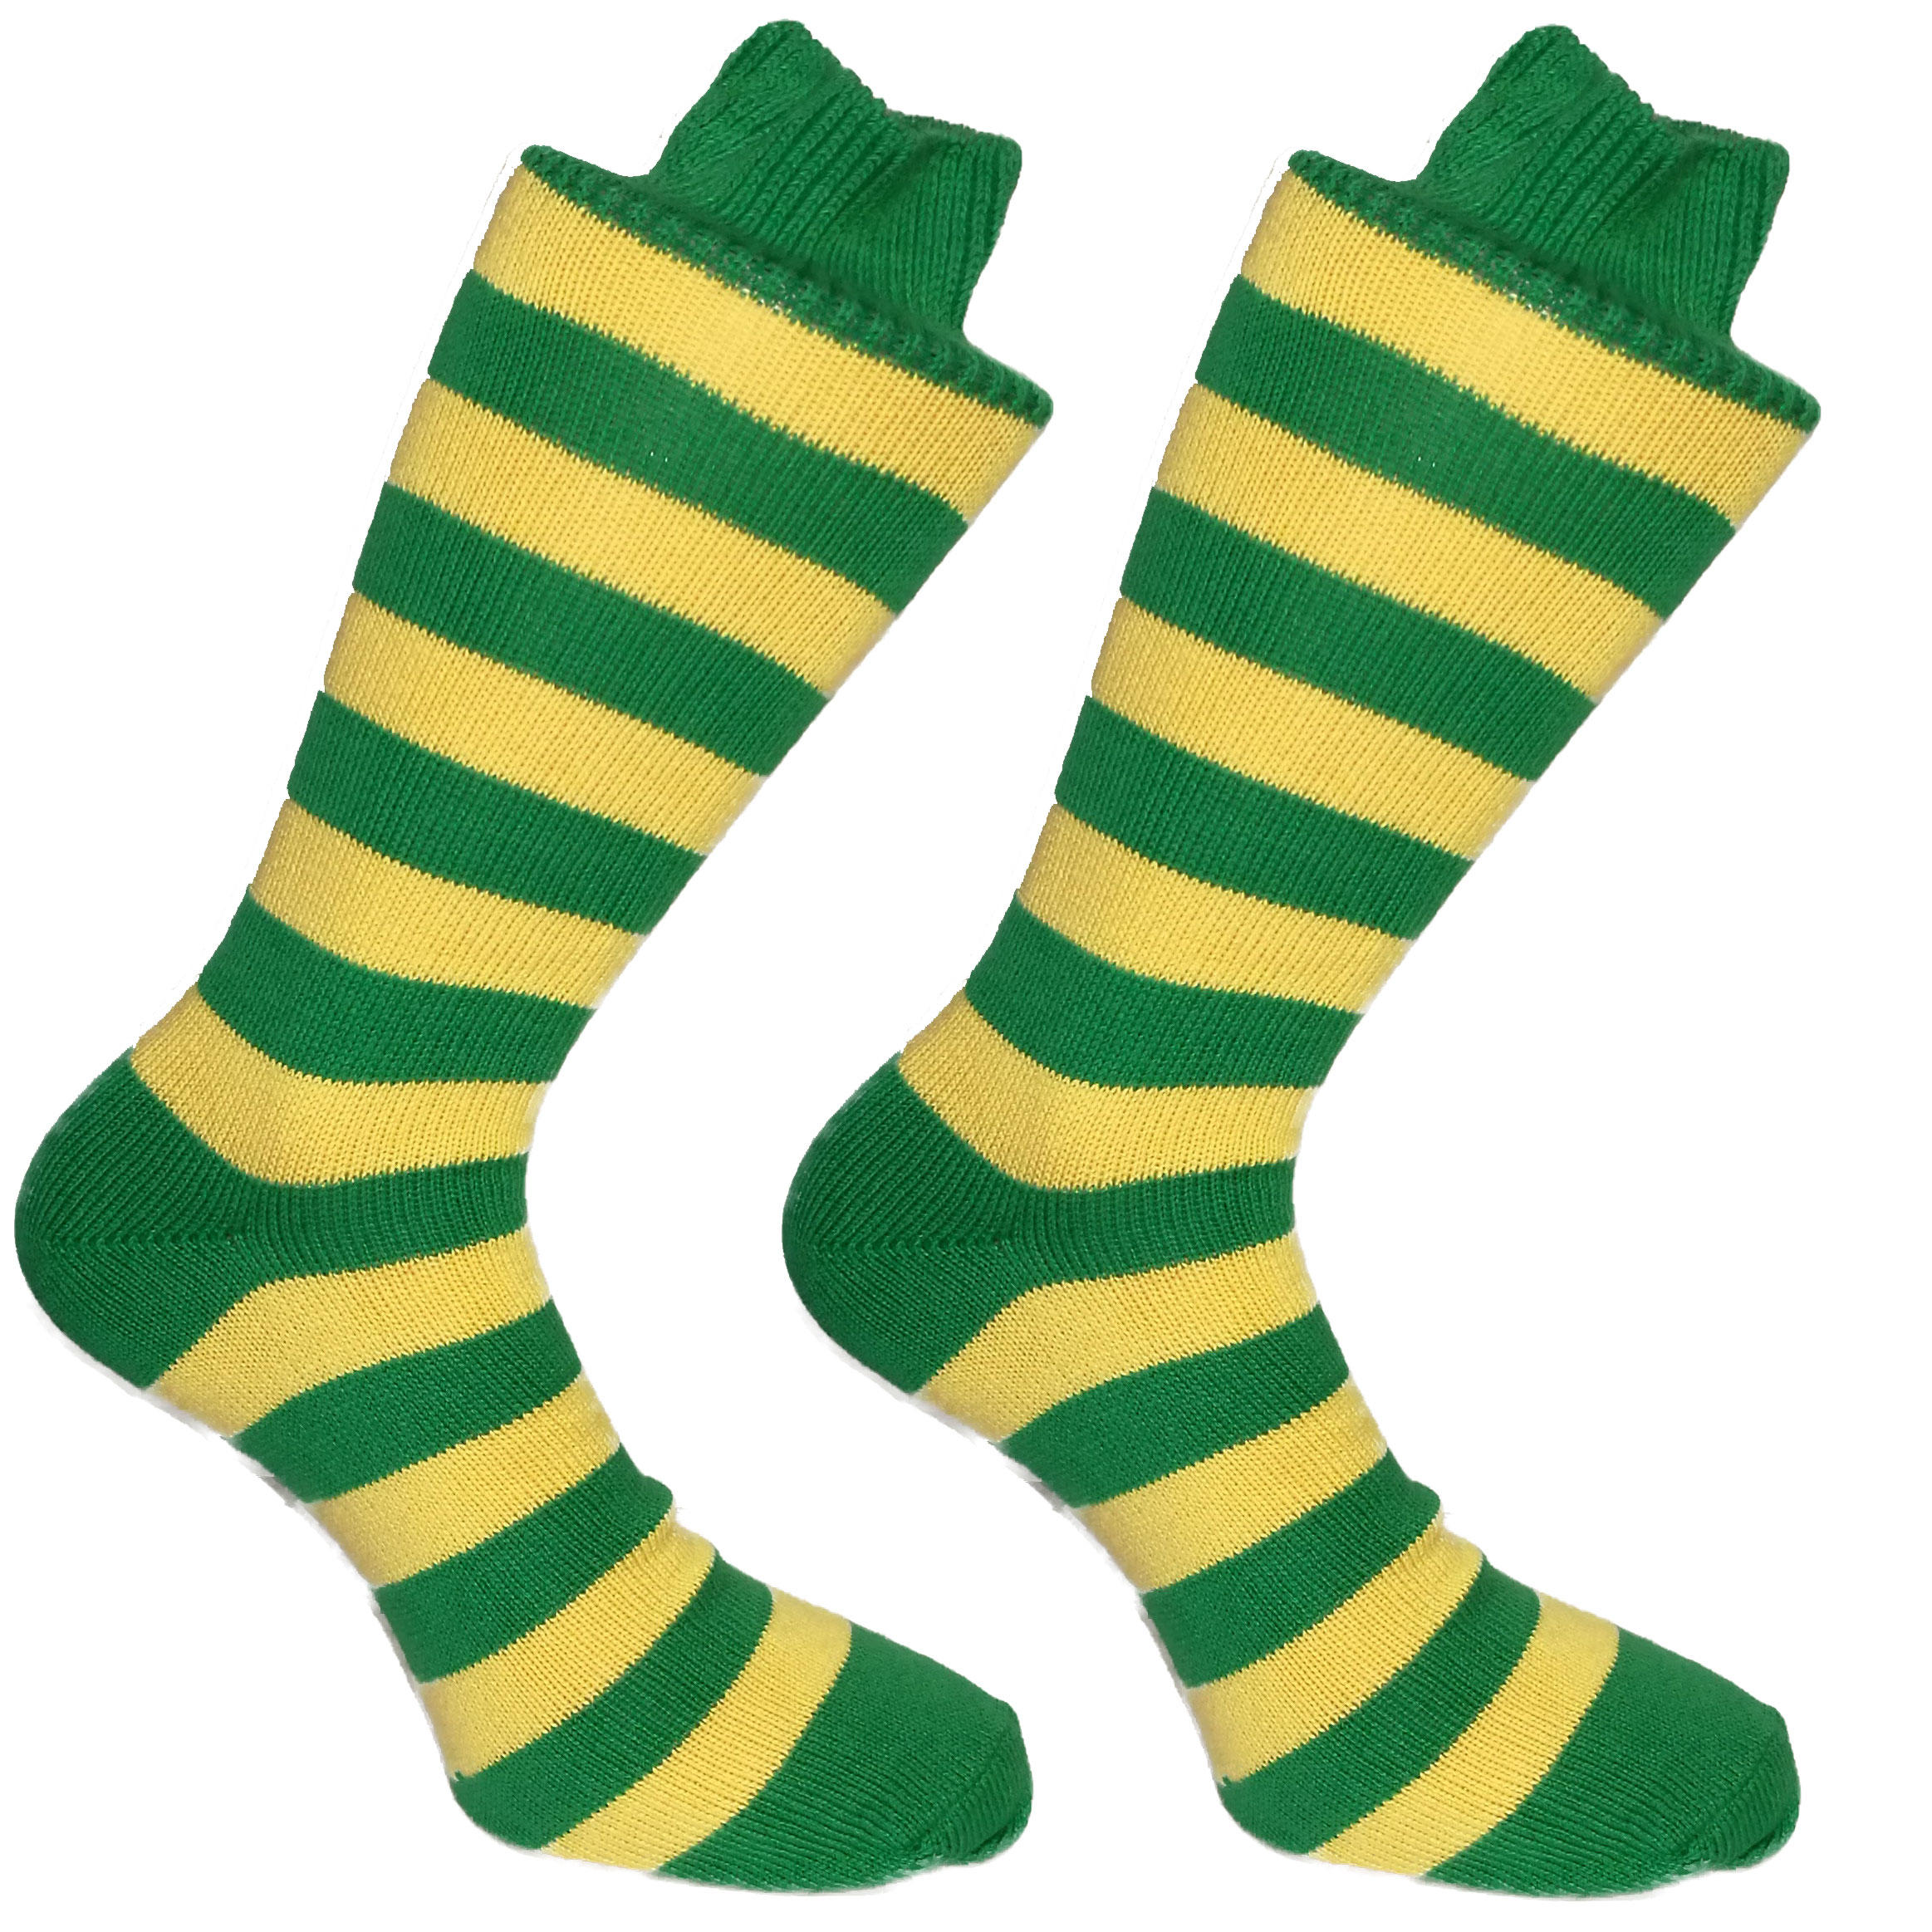 Green & Yellow Stripy Socks | SOCK CLUB® from Cuffs & Co